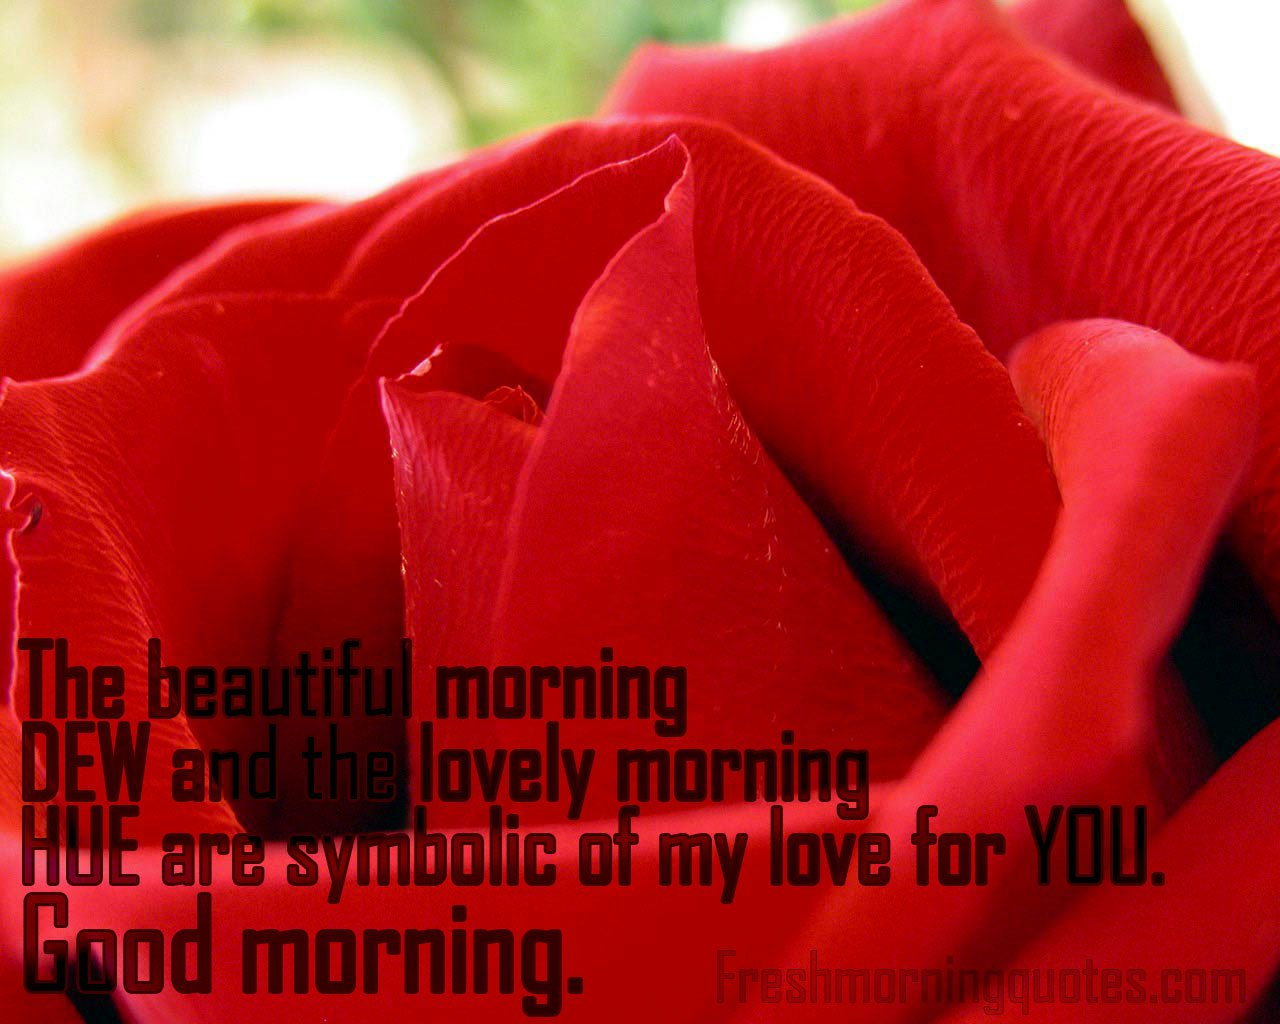 Good Morning Wishes With Flowers Pictures Images